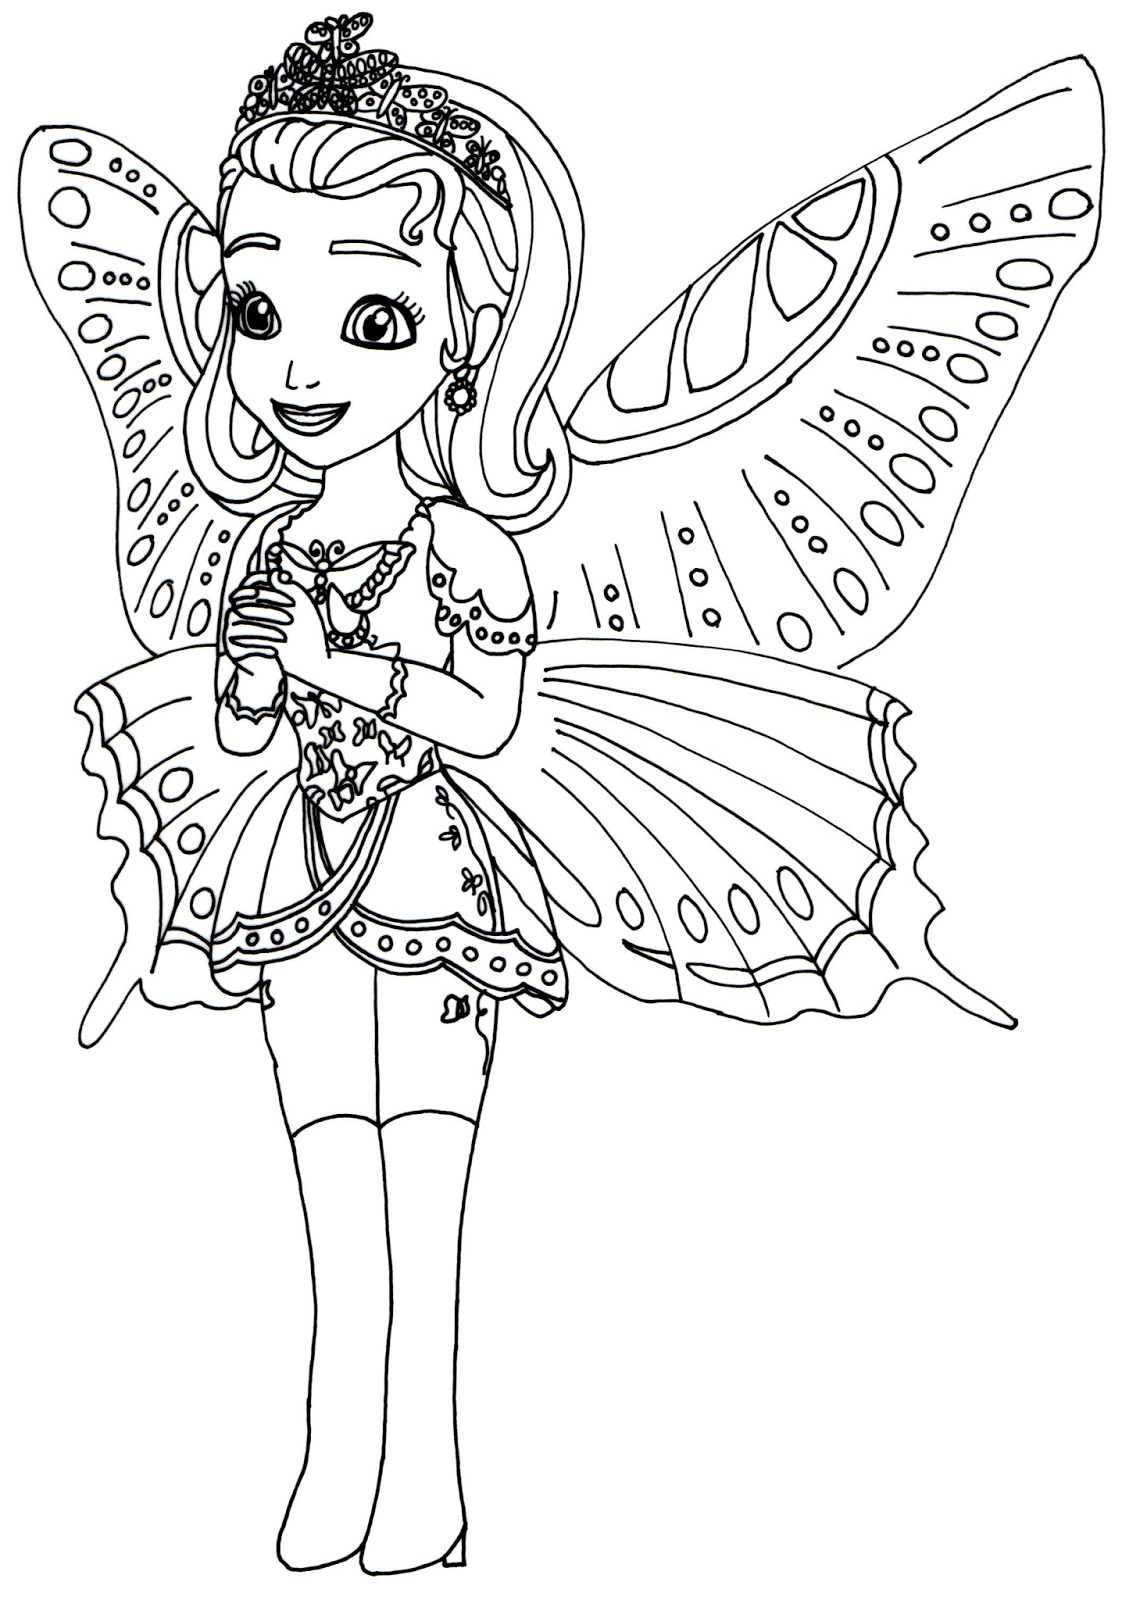 Princess hildegard coloring pages - Sofia The First Coloring Pages Princess Butterfly Sofia The First